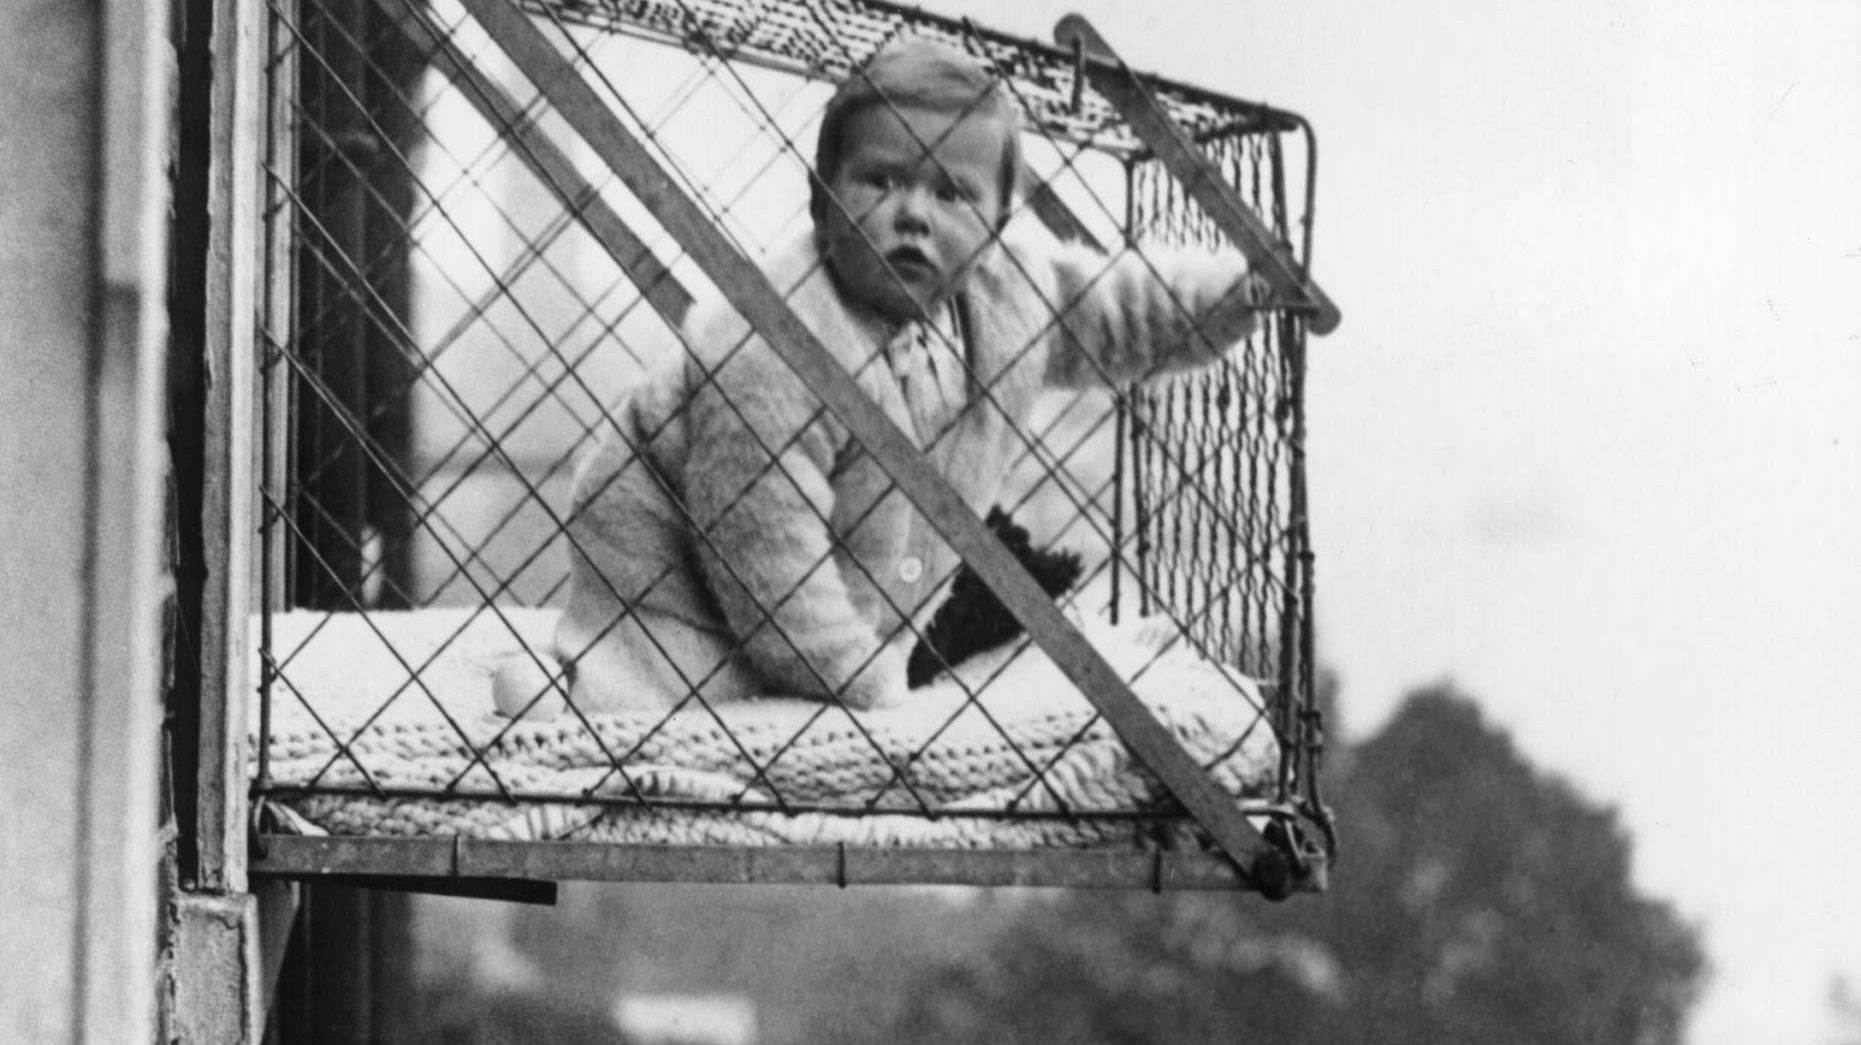 24 Puzzling Parenting Tips From the 1800s